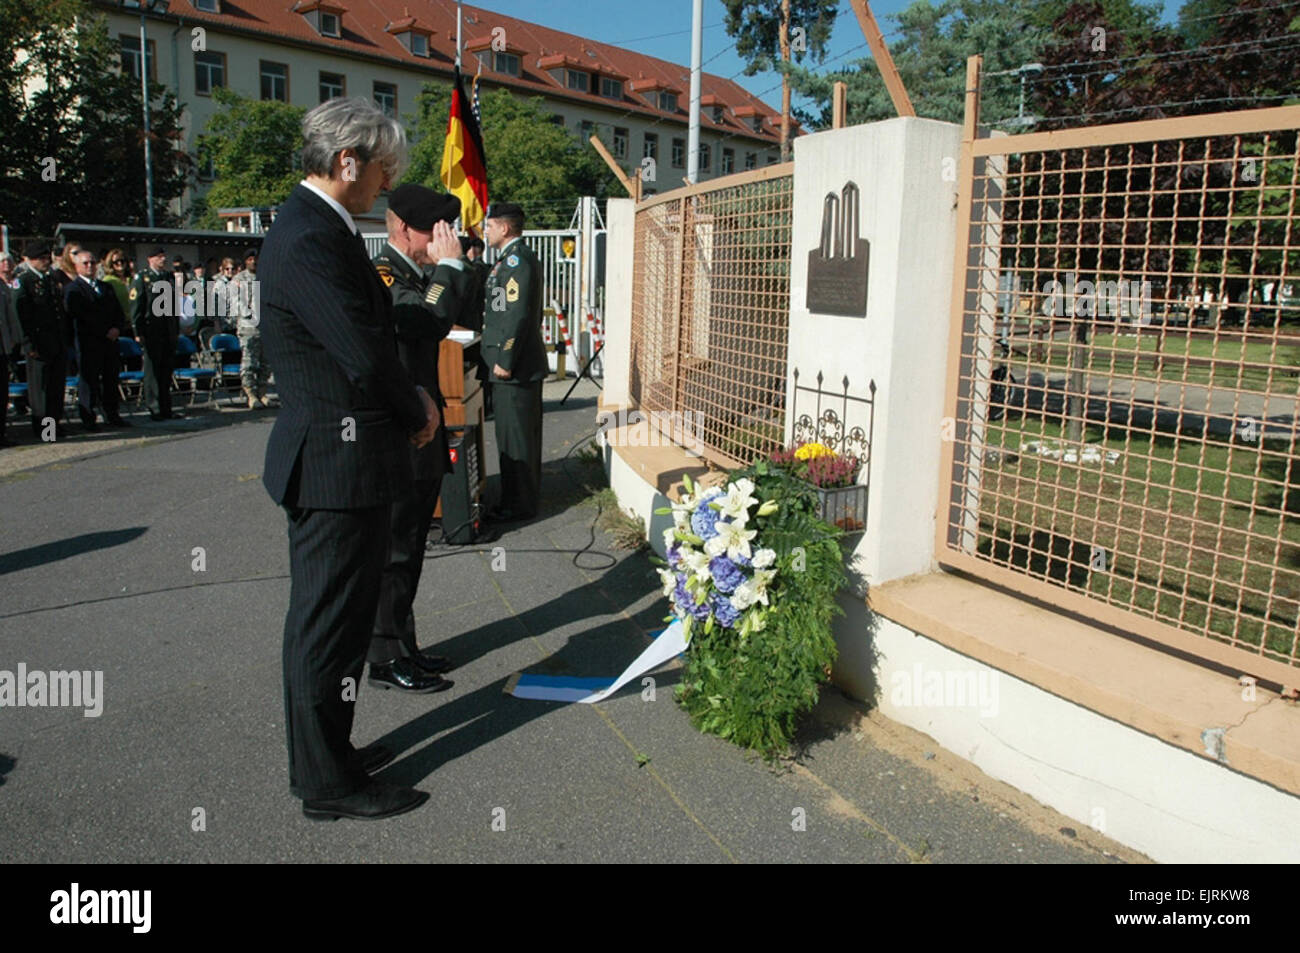 DARMSTADT, Germany - Lt. Col. Dan McFarland, commander of the 2nd Military Intelligence Battalion, salutes and Johann - Stock Image